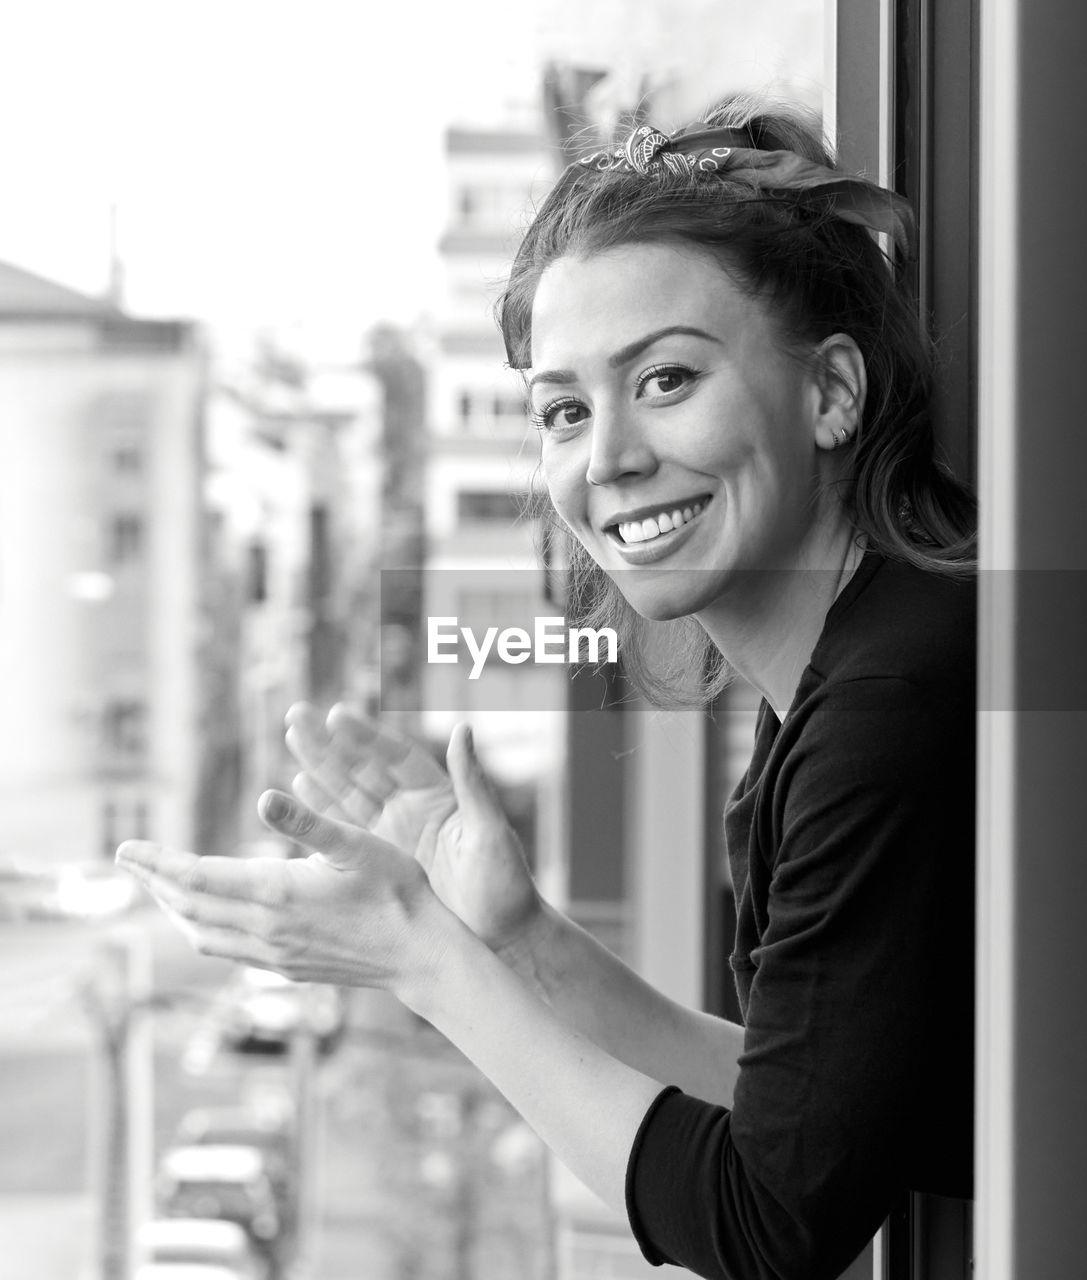 Smiling woman applauding while leaning from window